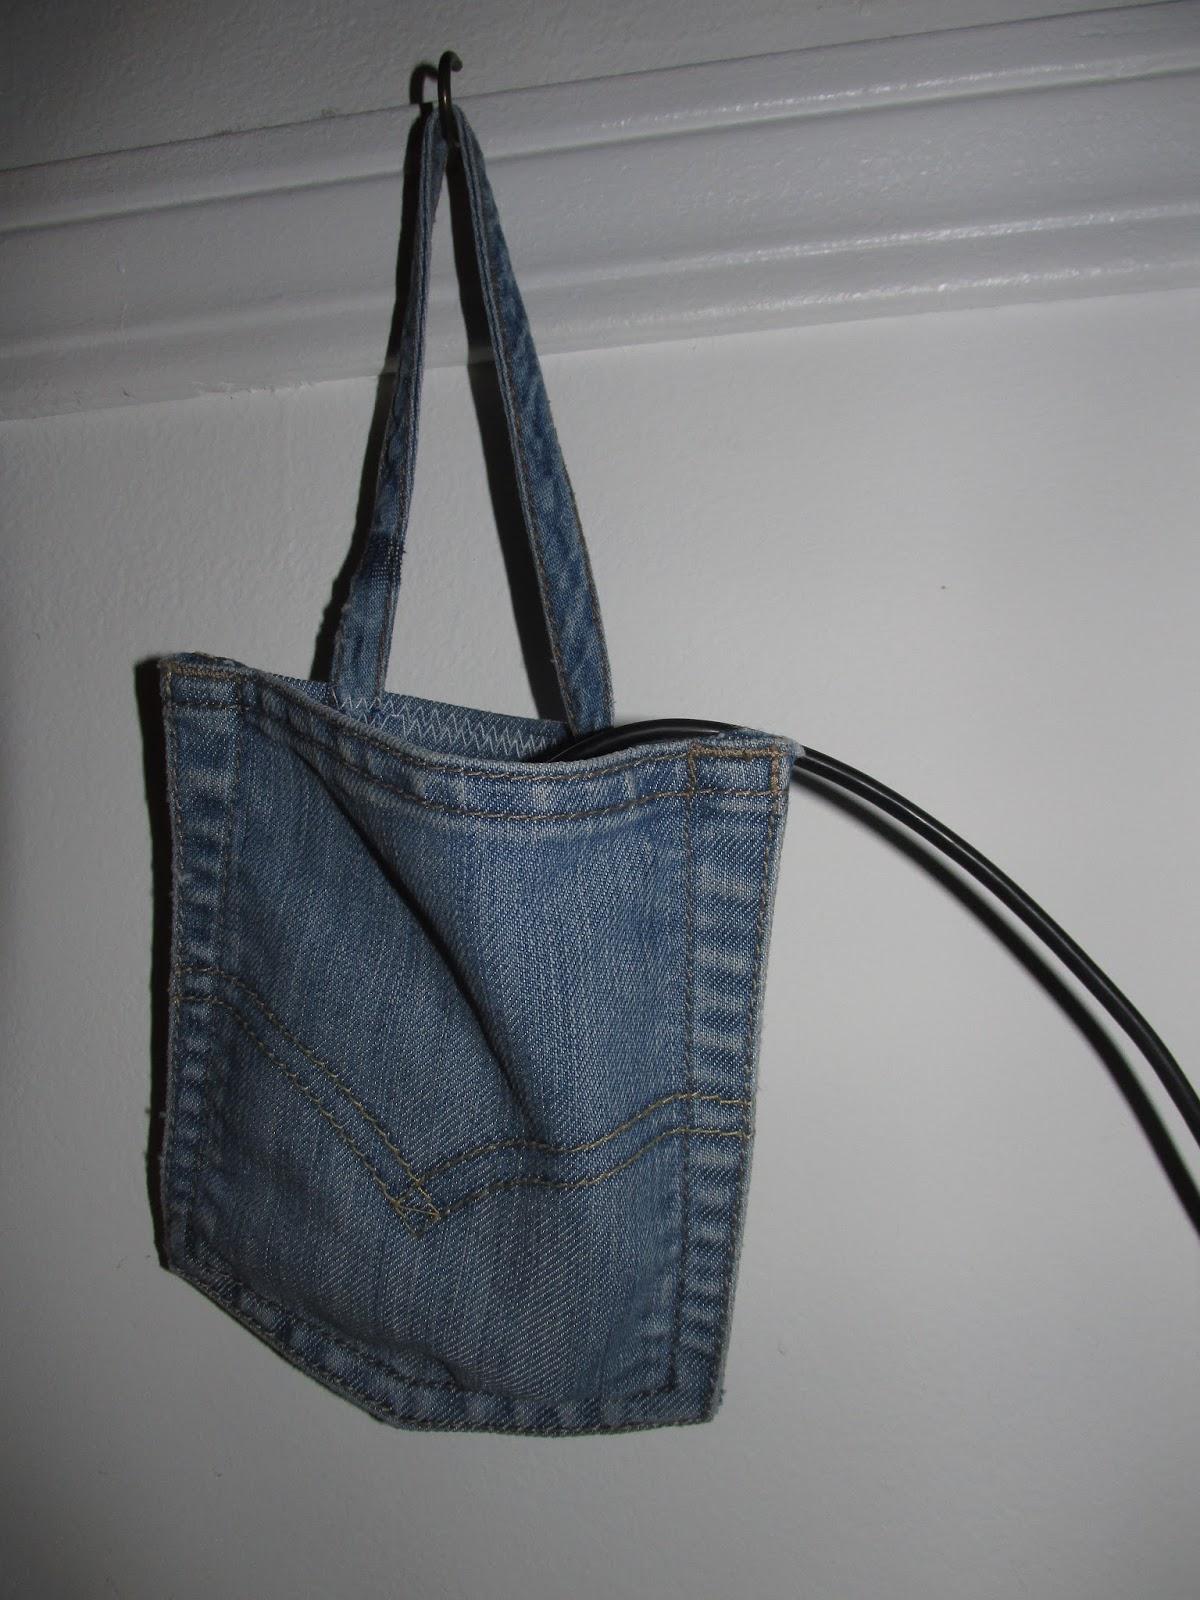 stuff blue jean pocket becomes charging station for wireless phone